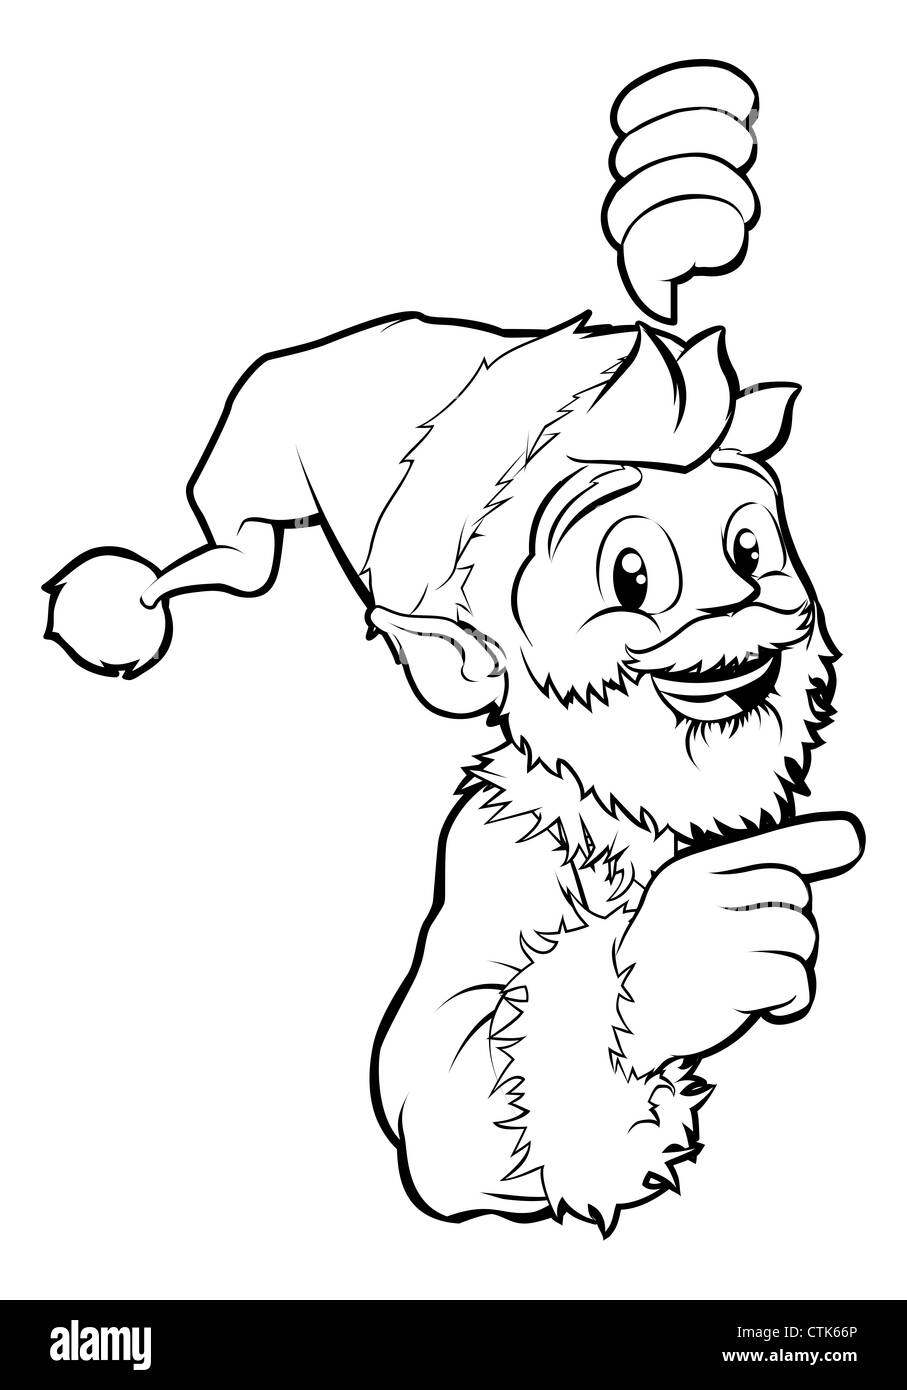 Black And White Santa Pointing Christmas Illustration Stock